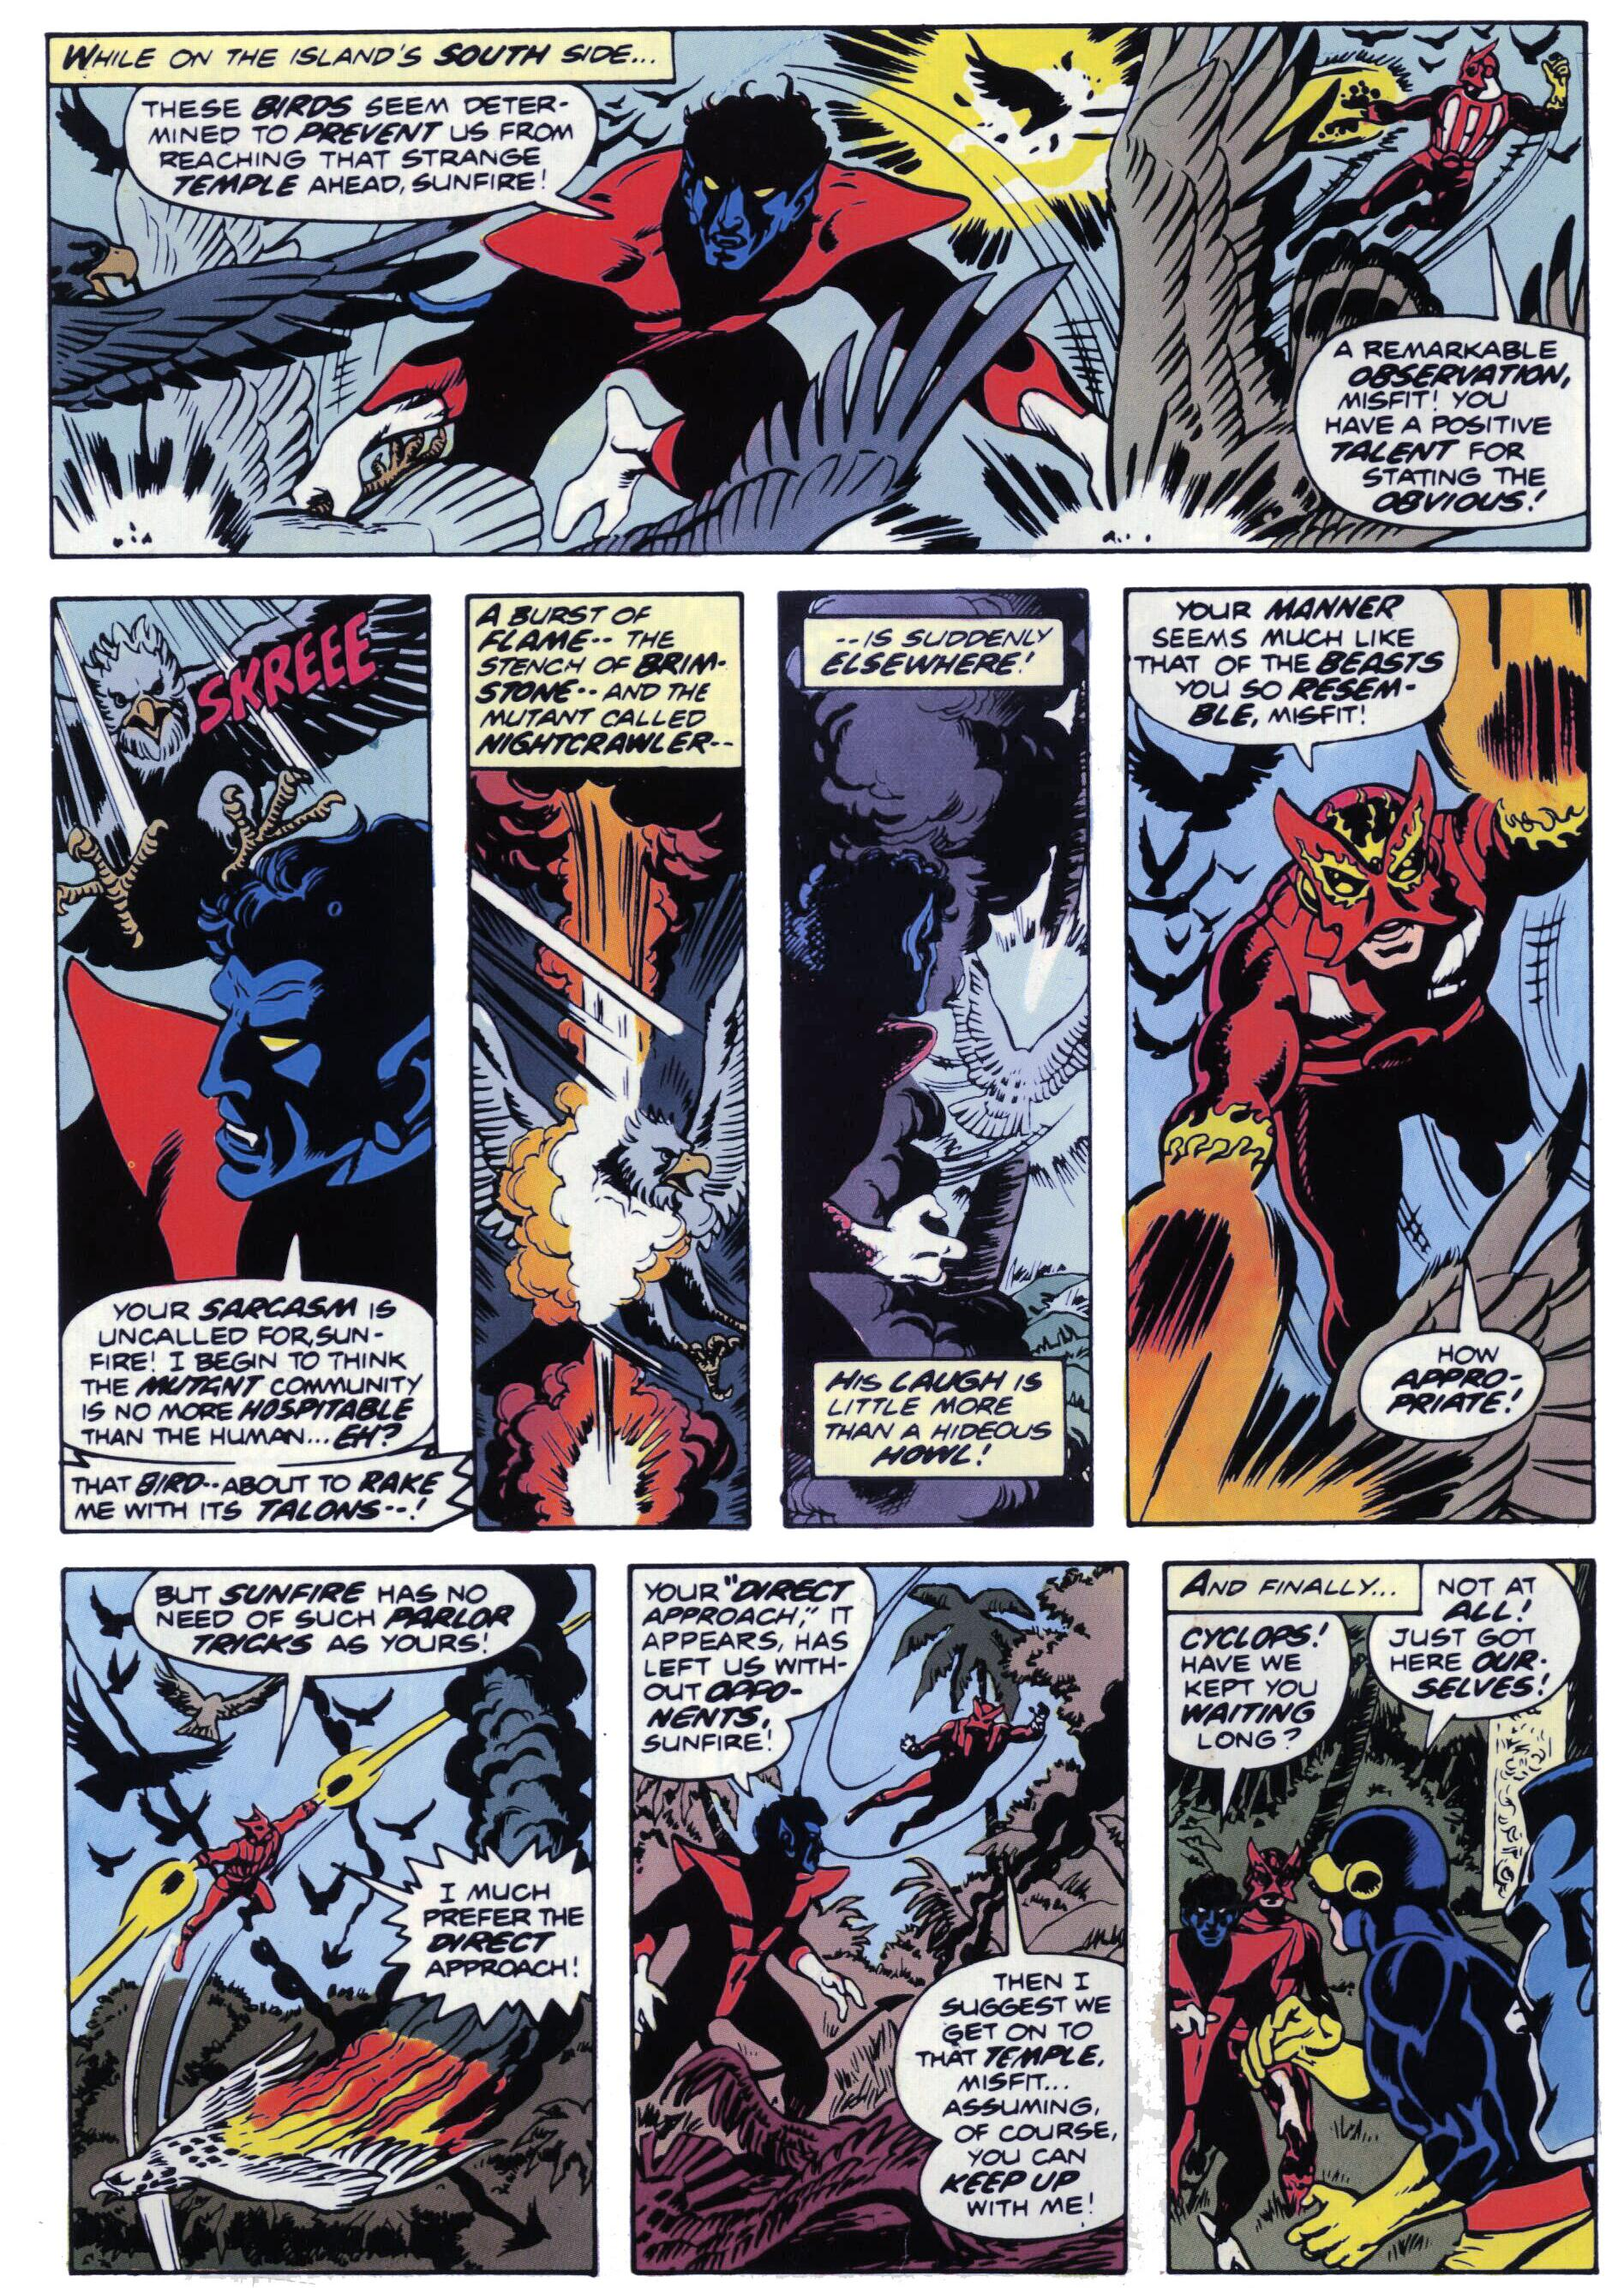 Read online Giant-Size X-Men comic -  Issue #1 - 27